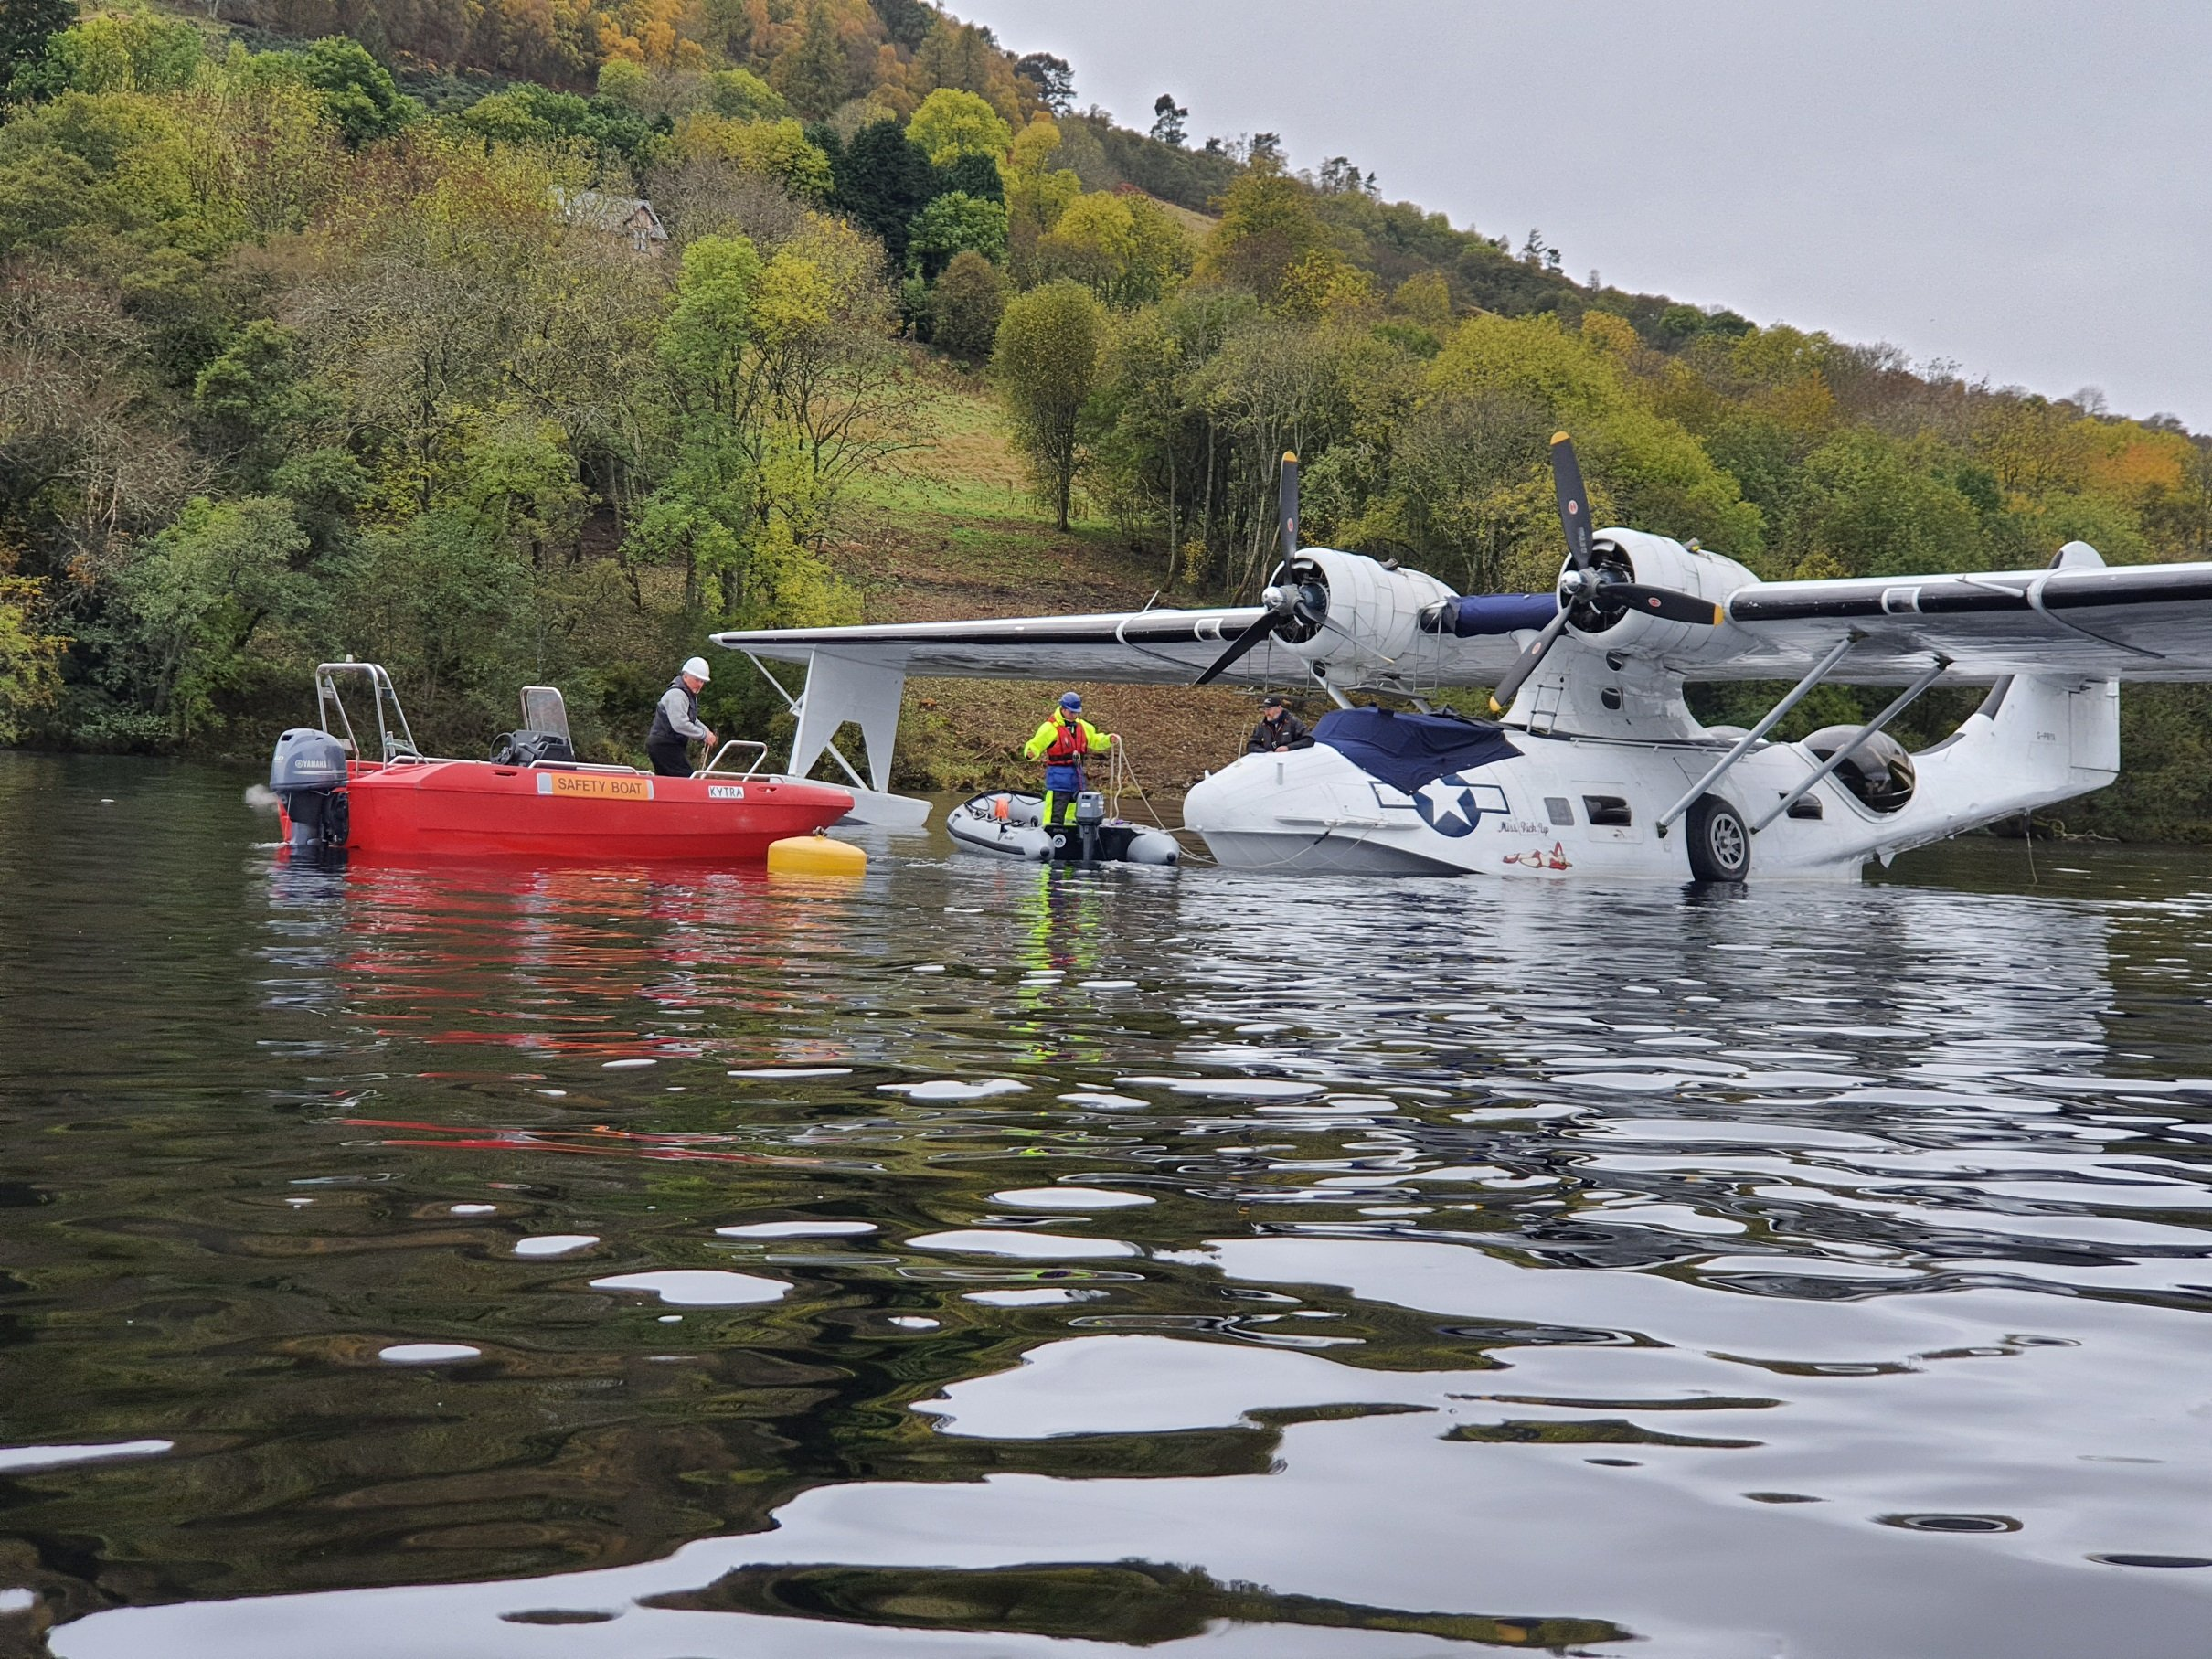 Thousands raised for war seaplane after engine failure landing on Loch Ness